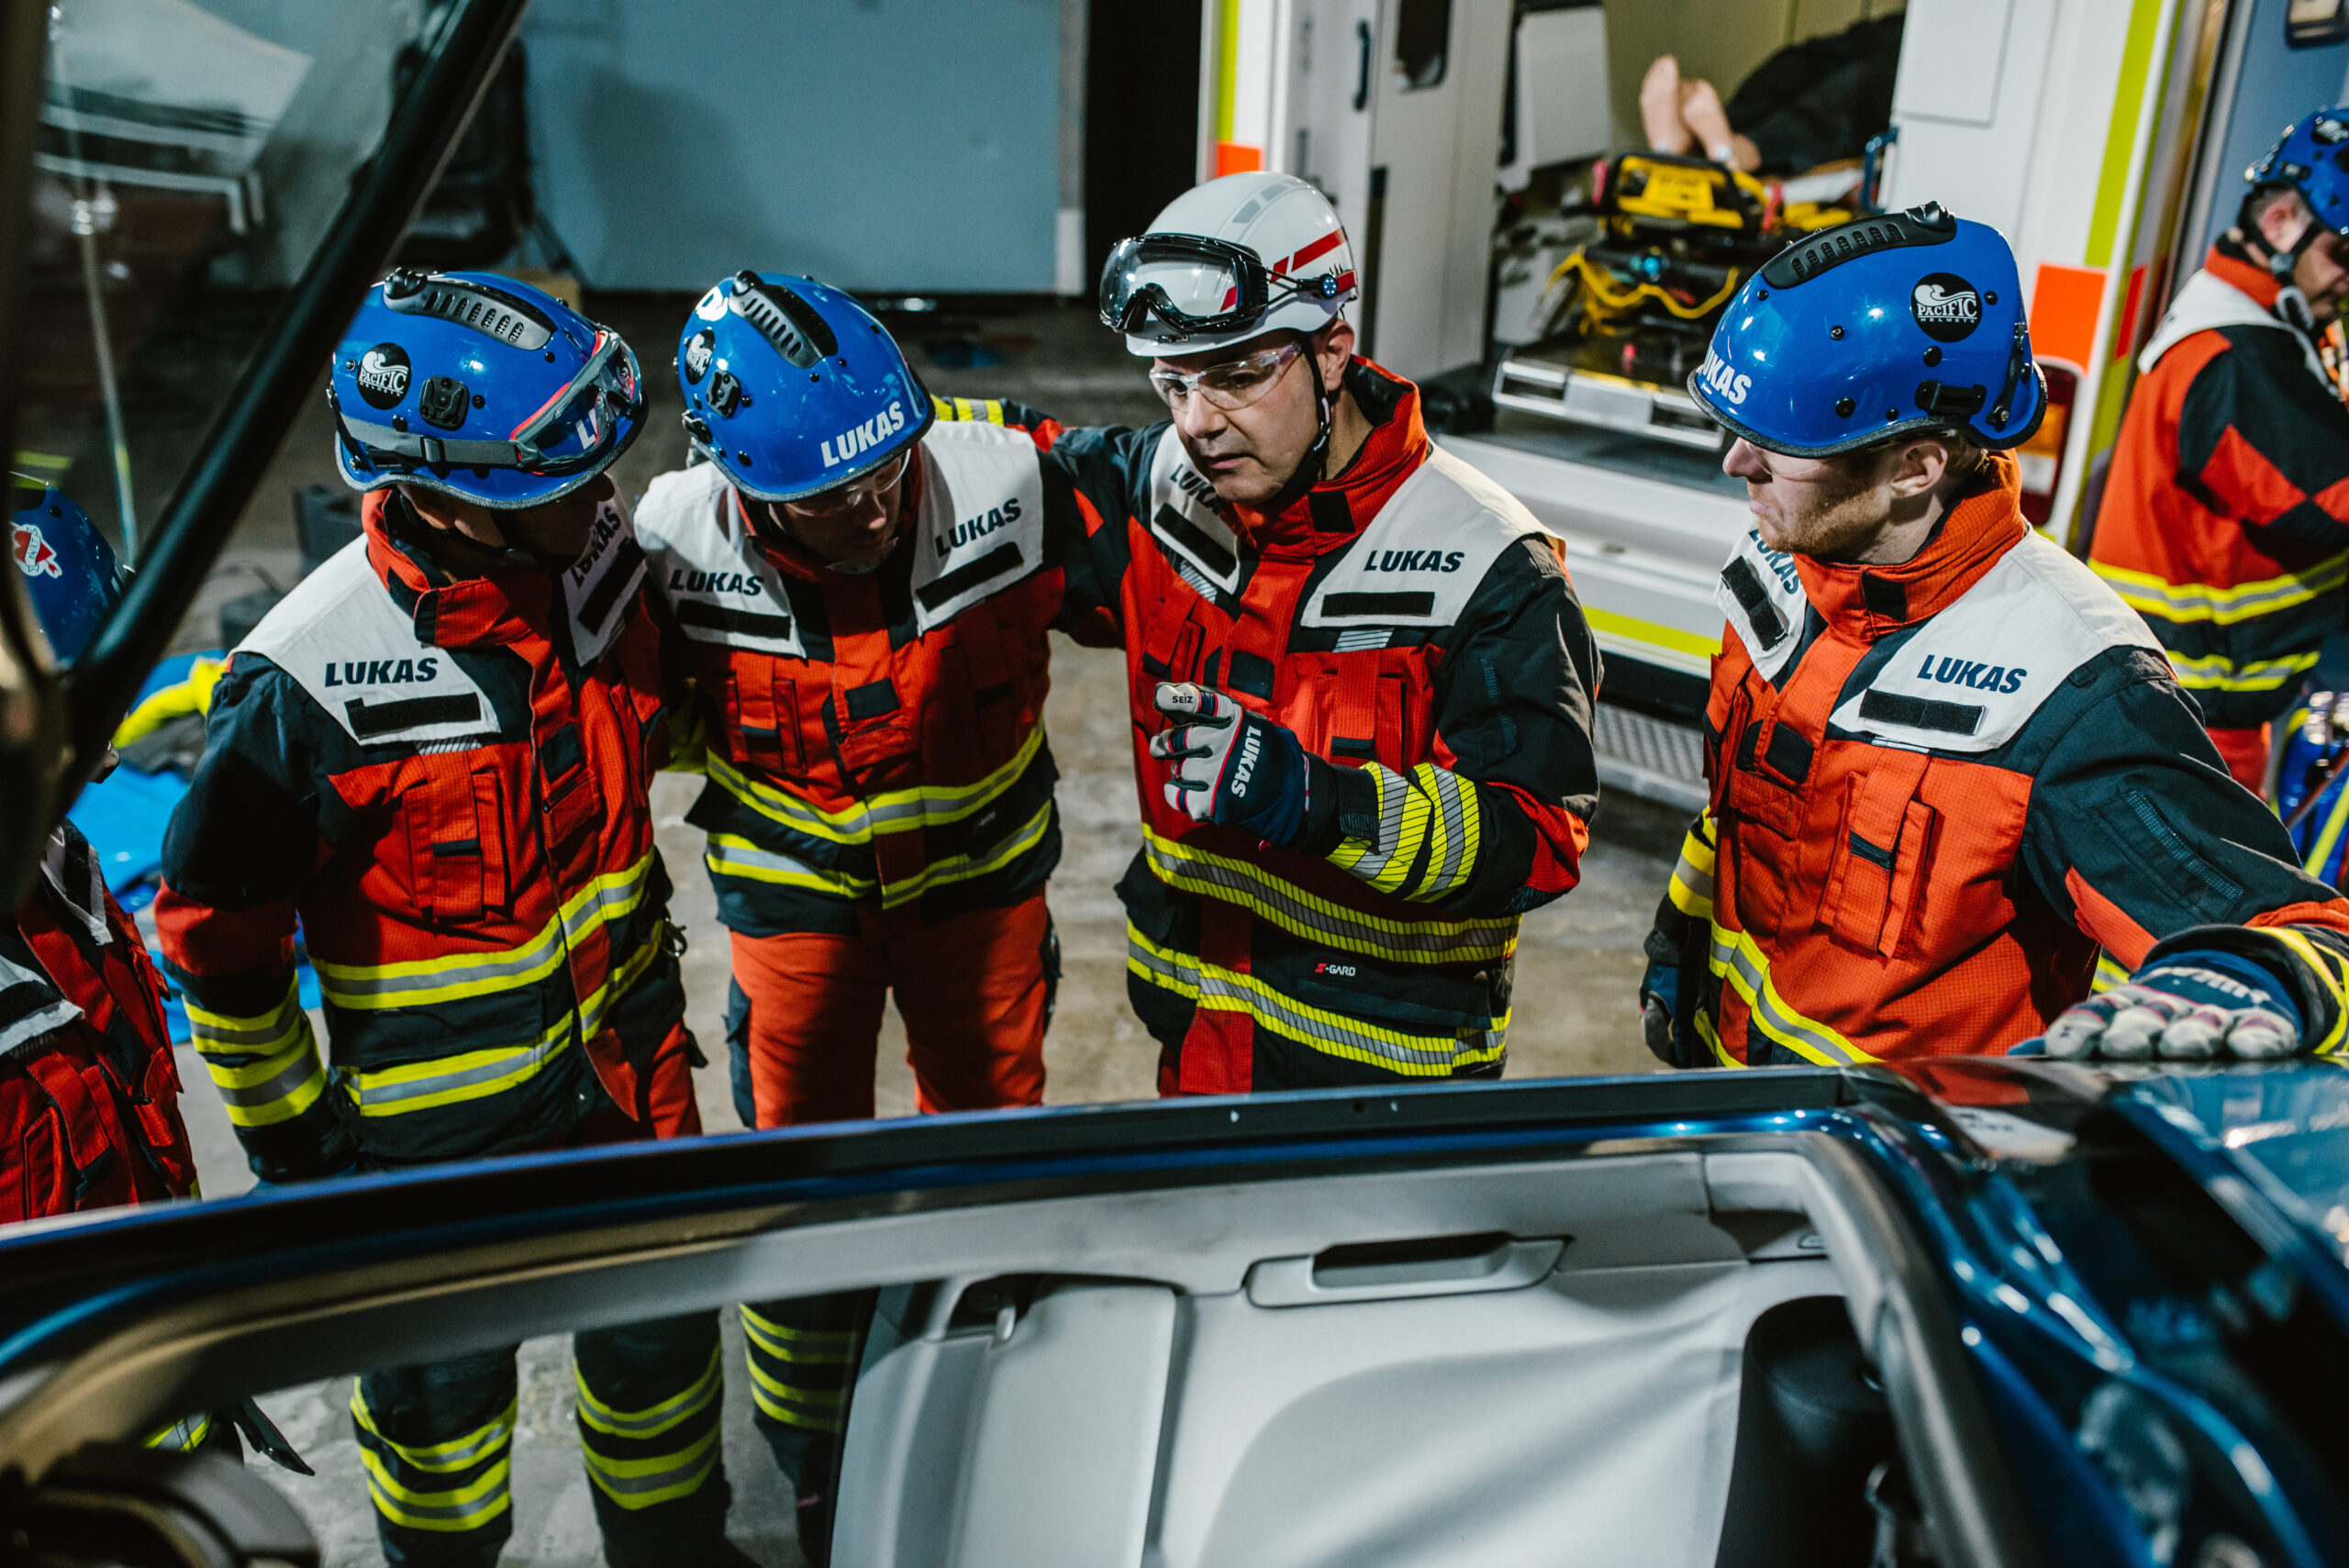 VEHICLE EXTRICATION – THE NEXT GENERATION: COMMUNICATION